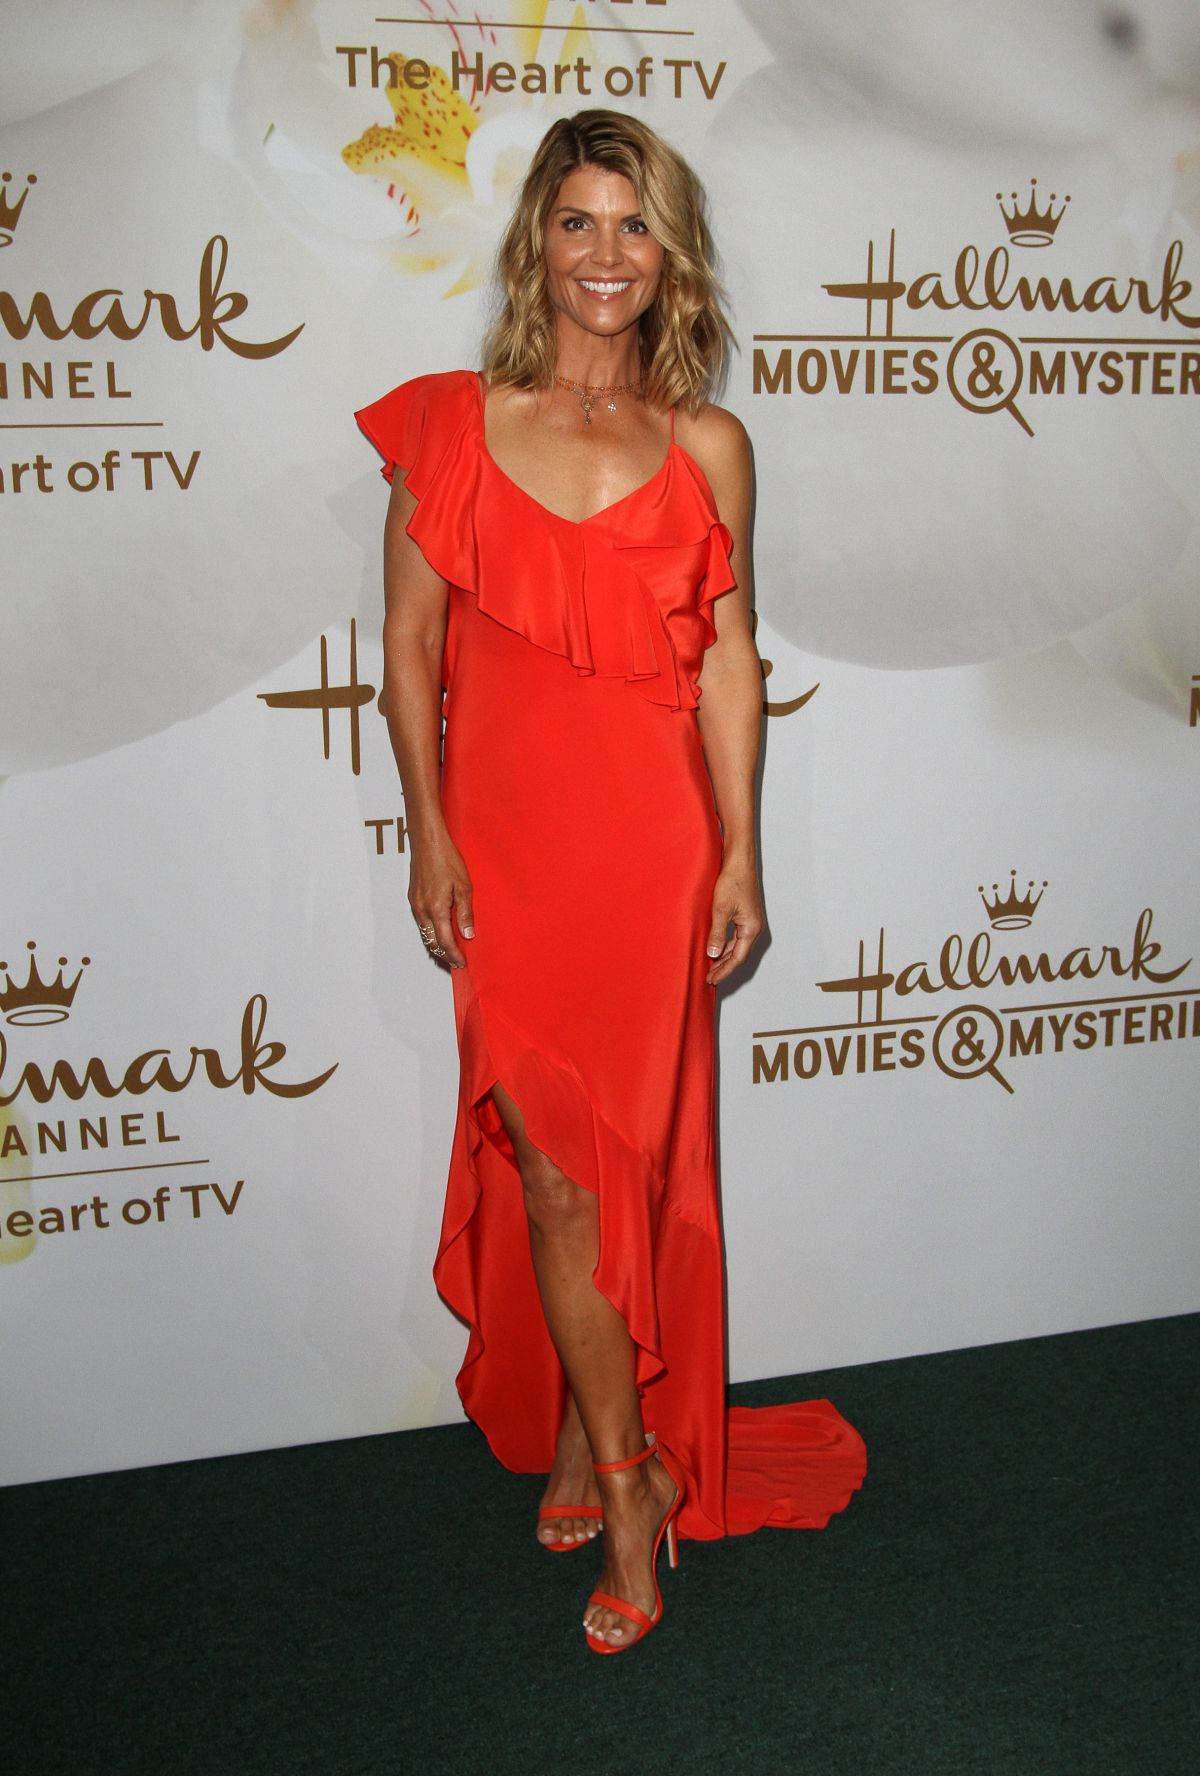 LORI LOUGHLIN at Hhallmark Event at TCA Summer Tour in Los Angeles 07/27/2017